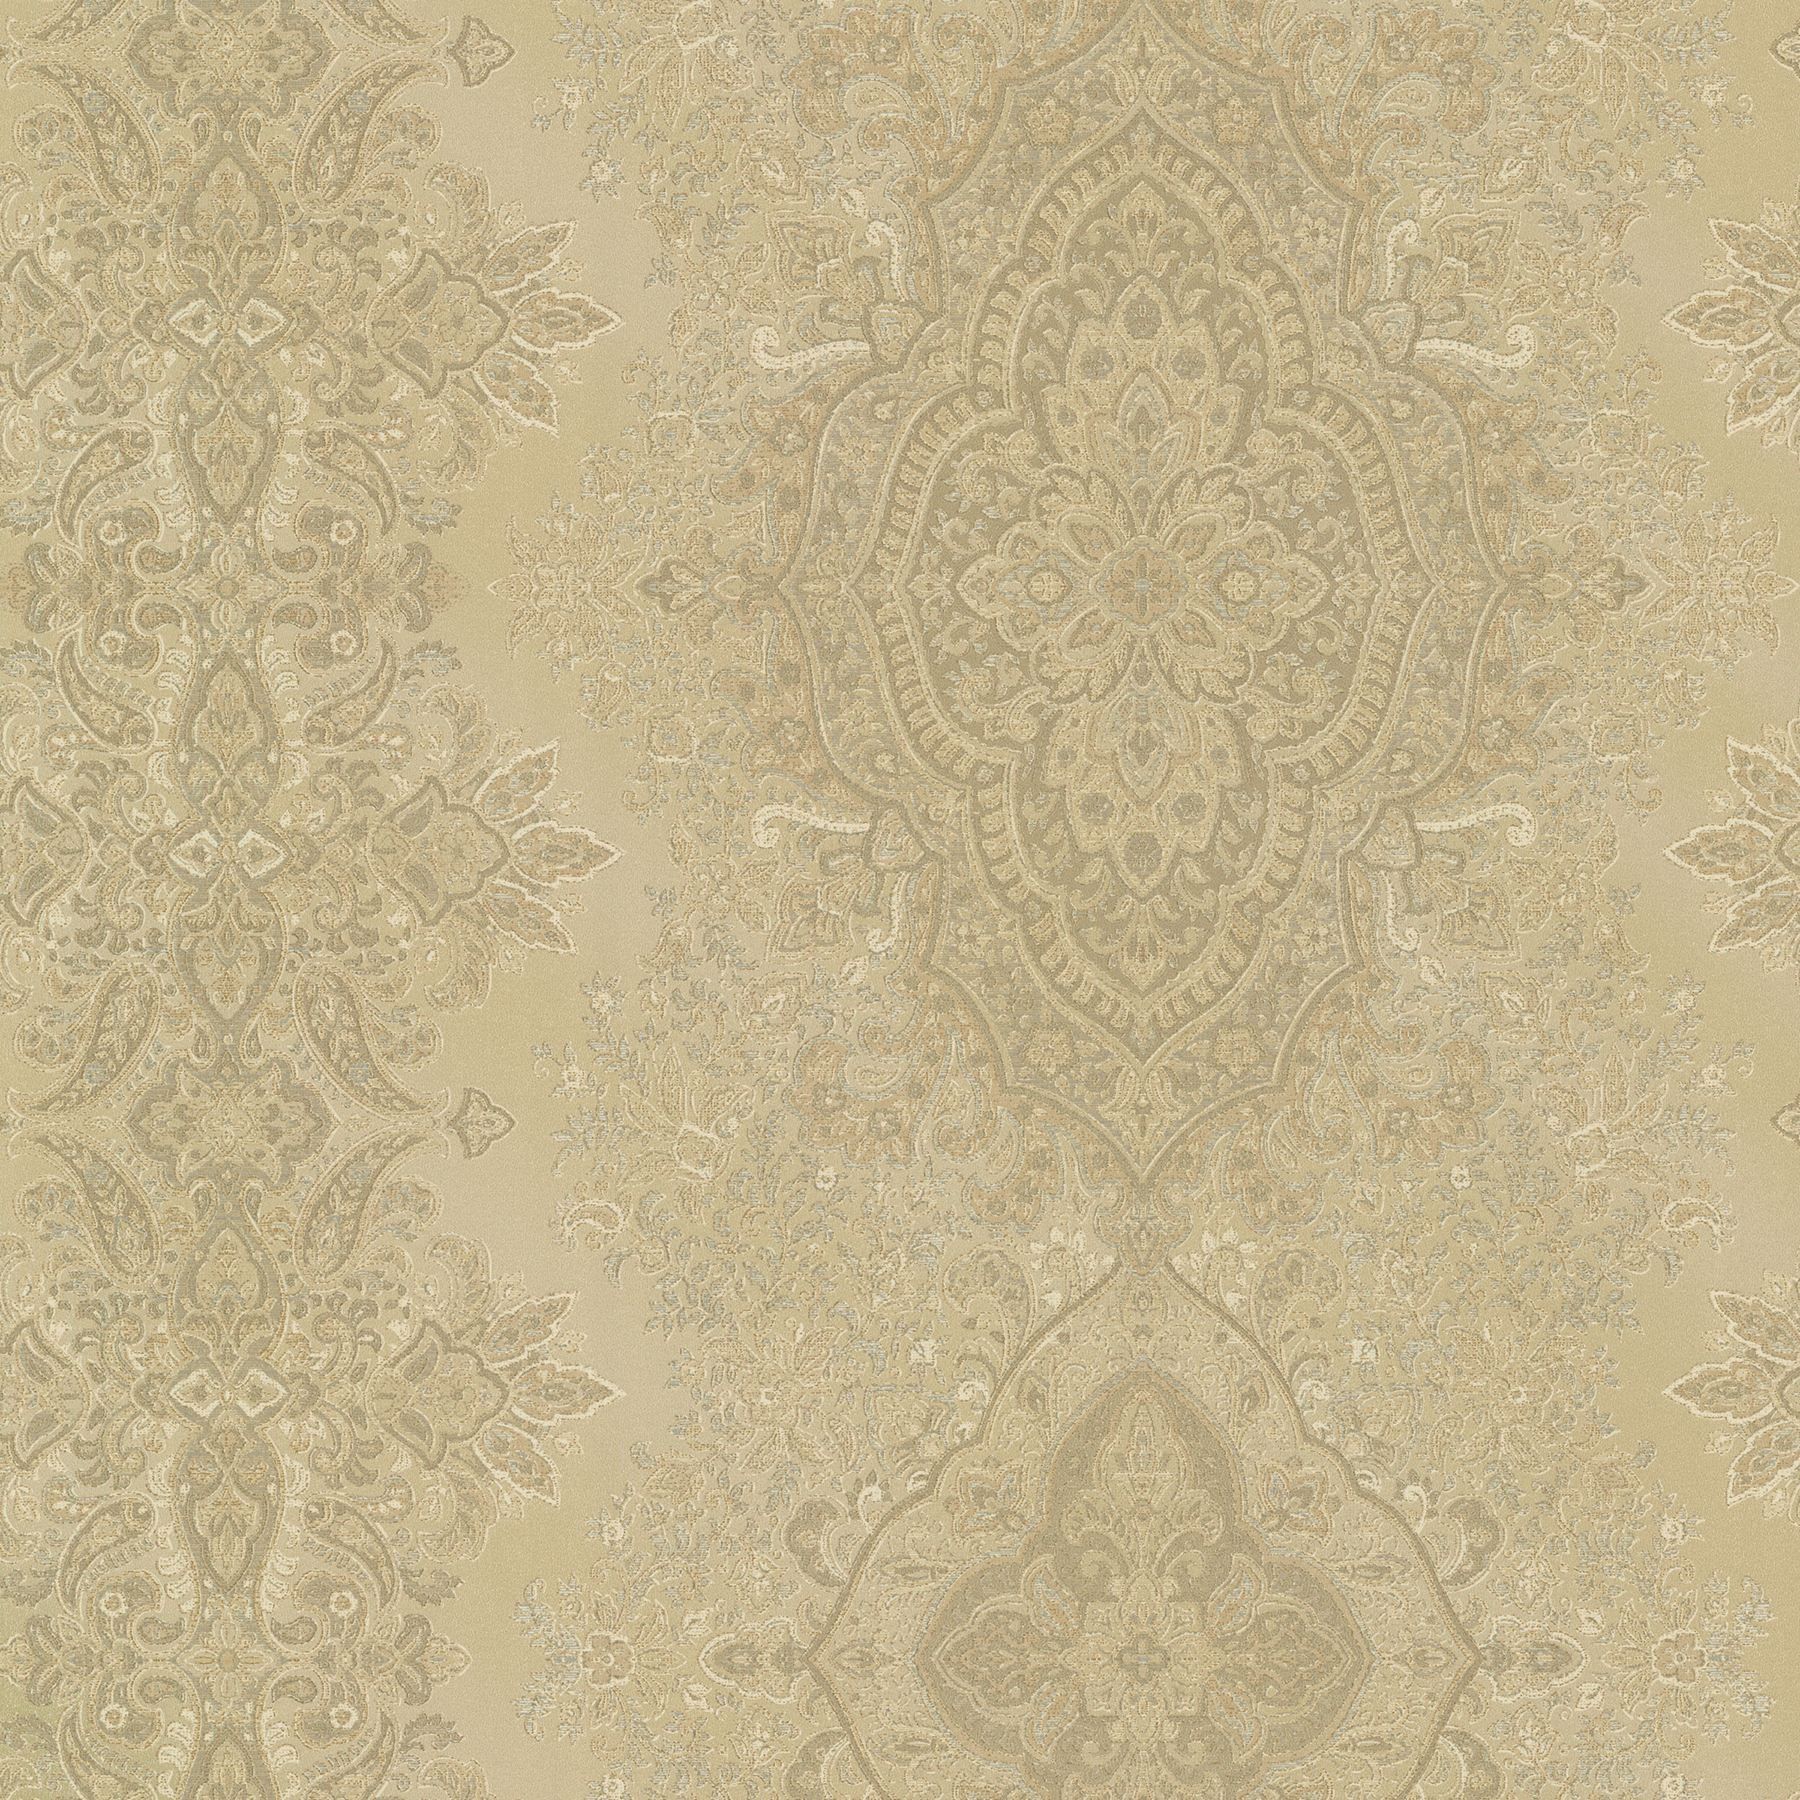 Picture of Benedict Gold Ornate Paisley Stripe Wallpaper